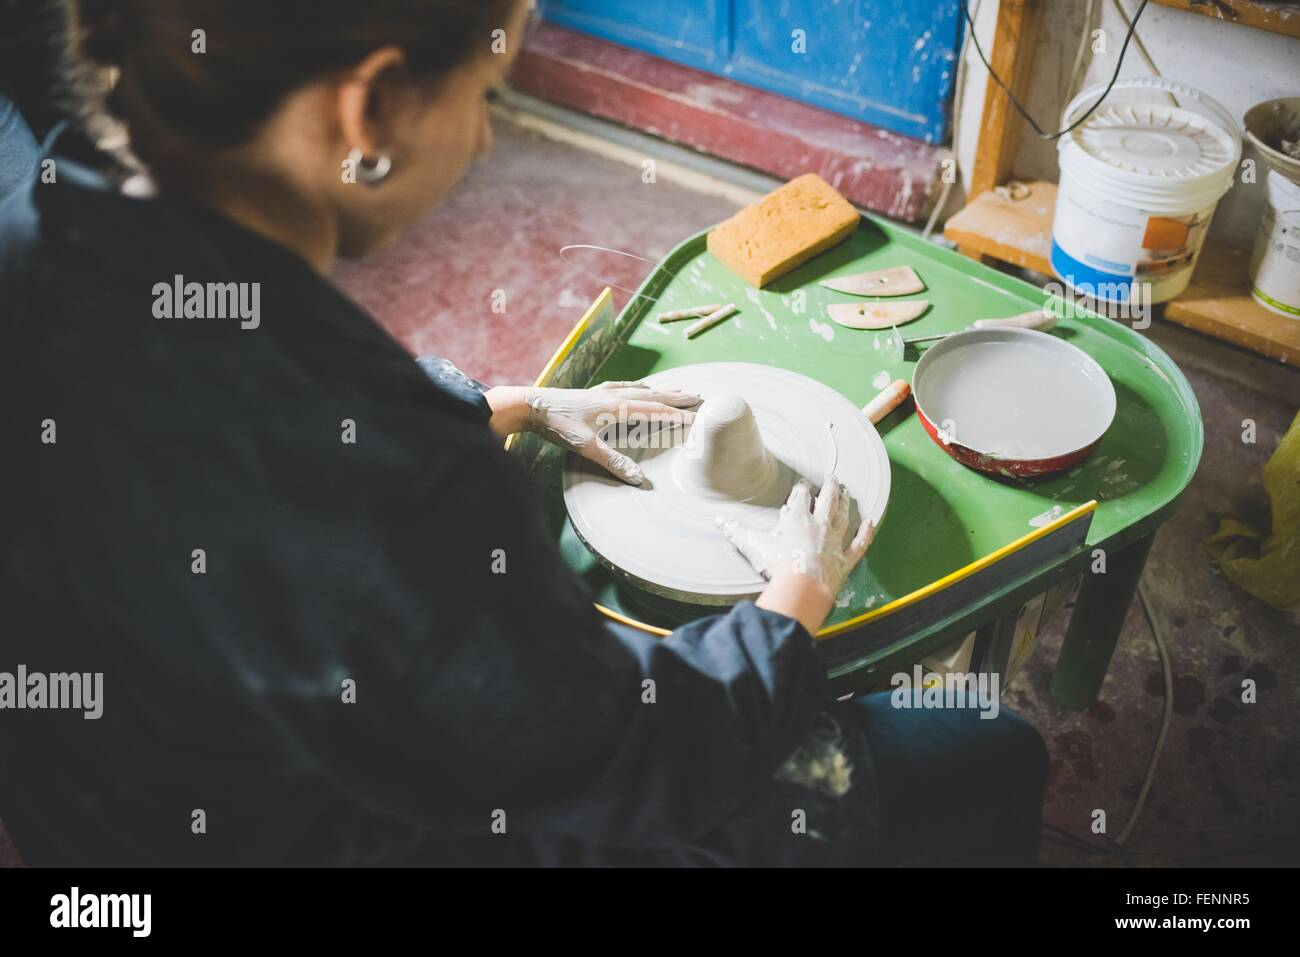 Over shoulder view of young woman sitting using pottery wheel - Stock Image